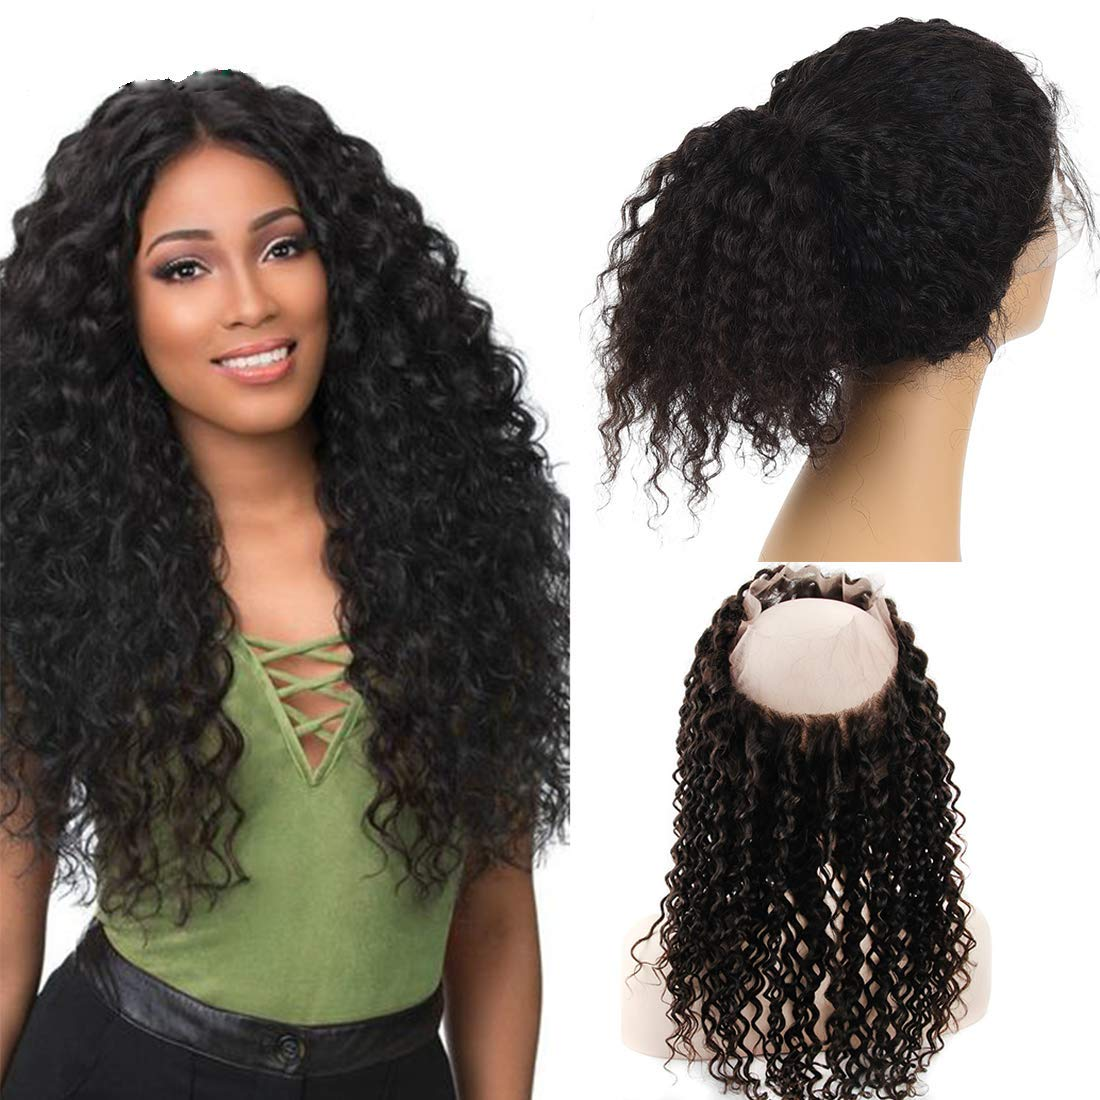 3/4 Bundles With Closure Hair Extensions & Wigs Strict 3 Bundles Malaysian Loose Wave With Pre Plucked Closure With Baby Hair Bouncy Curl No Shedding No Tangle Non Remy Black 1b